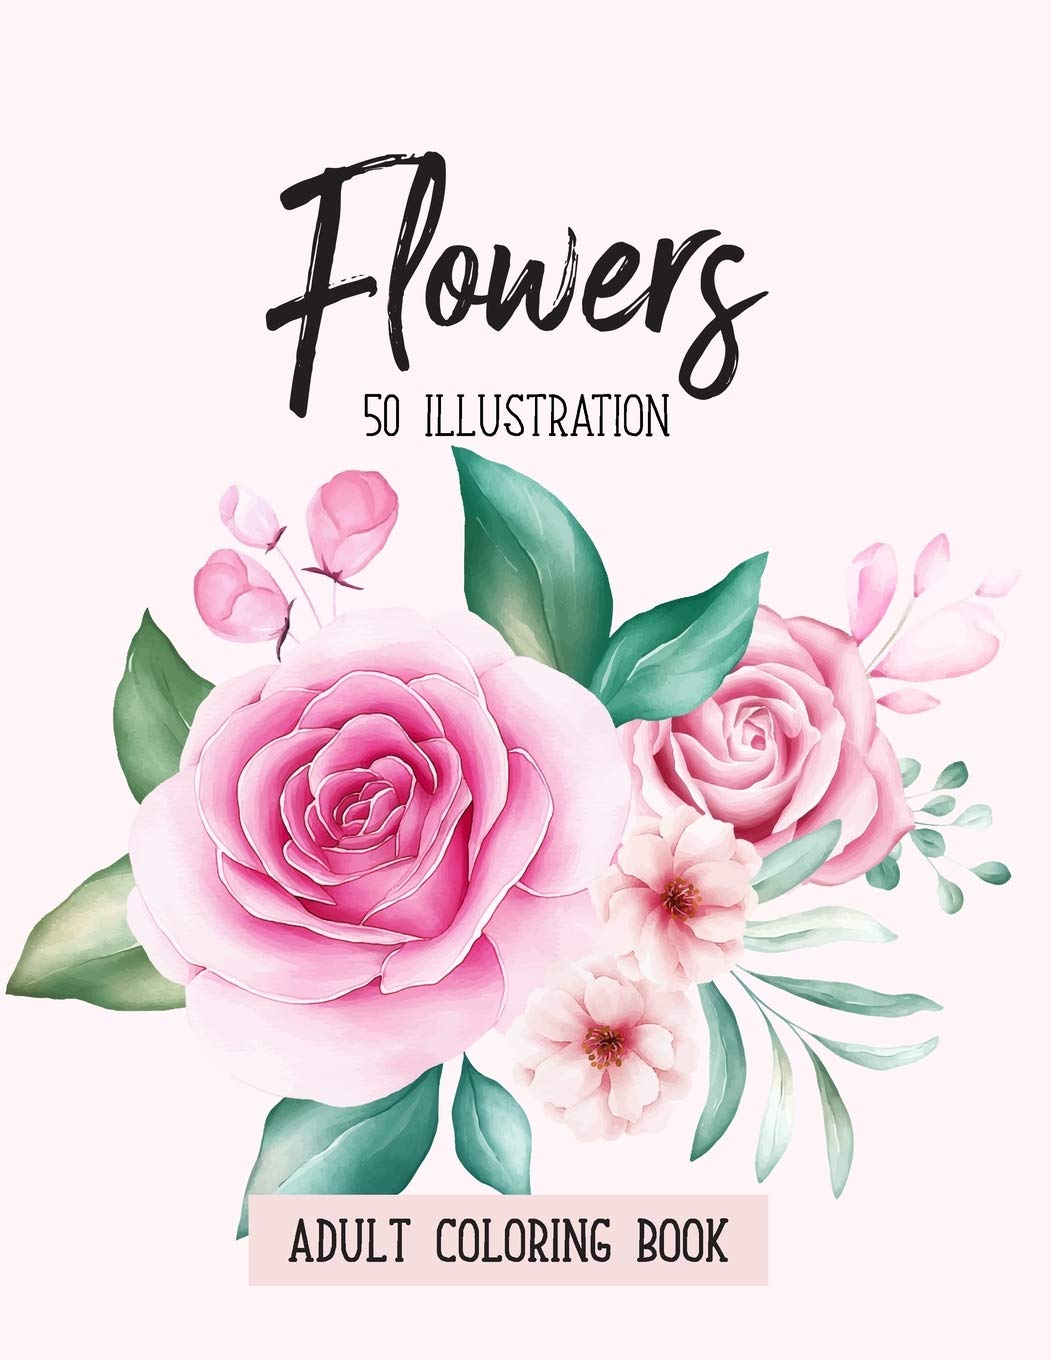 Buy Flowers Coloring Book An Adult Coloring Book With Fun Easy Realistic Flowers Bouquets Floral Designs Sunflowers Roses Leaves Spring Summer And Relaxing Coloring Pages Book Online At Low Prices In India